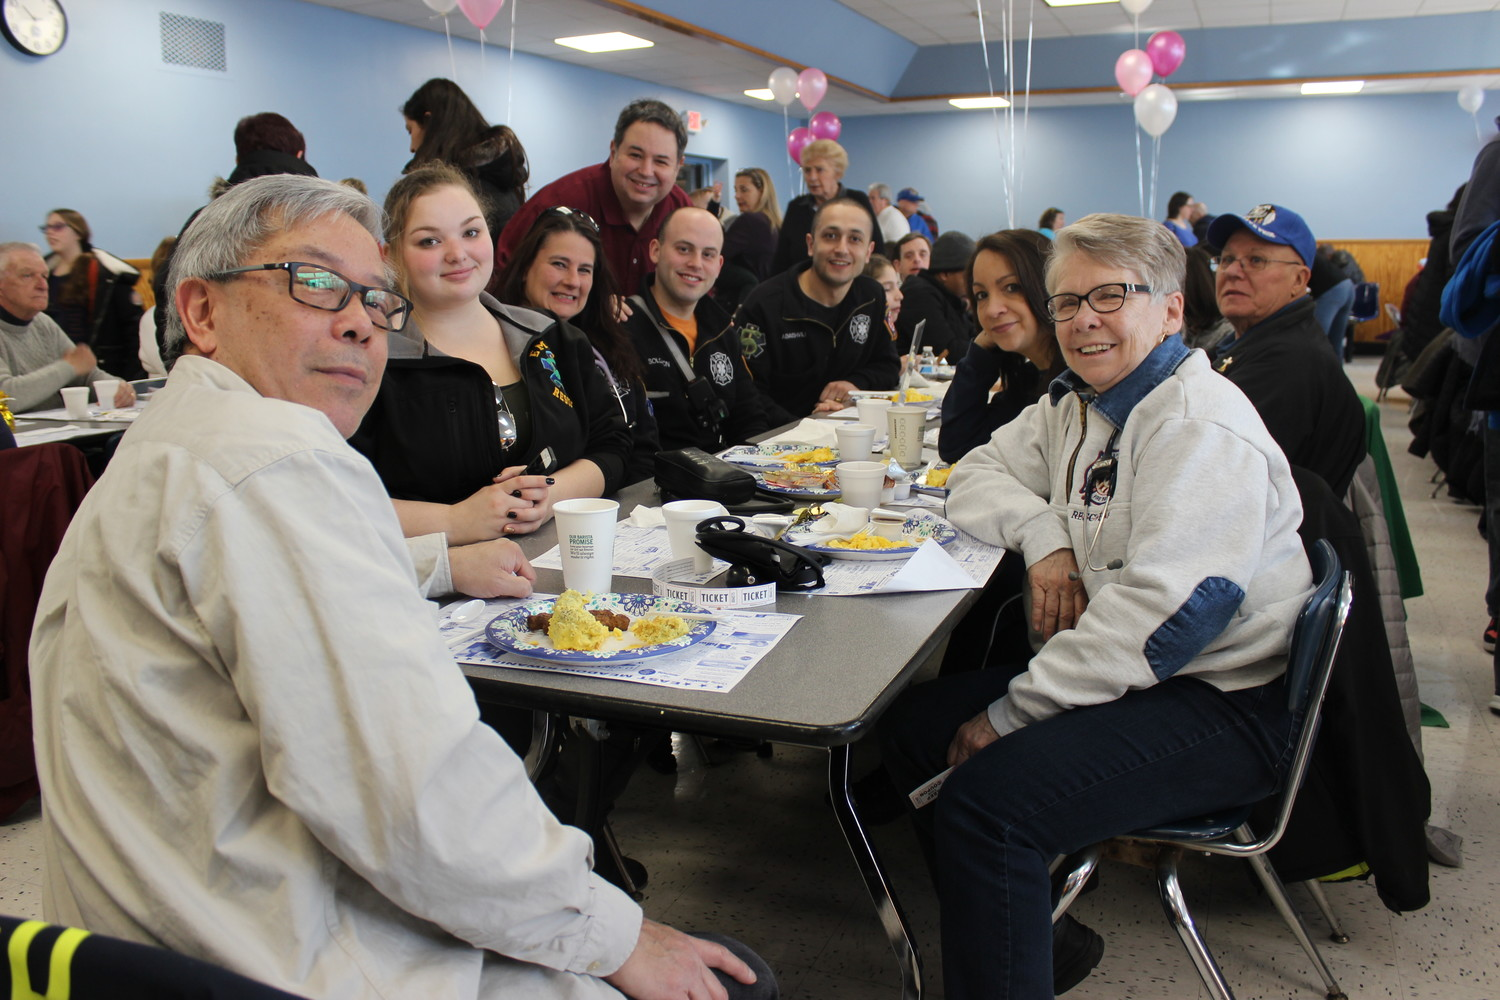 Members of the East Meadow Fire Department's Rescue Company 5 were joined with friends at the East Meadow Kiwanis Club's annual pancake breakfast on March 11. Pictured are George Choy, left, Sam Mongello, Robin Fitzpatrick, Ross Schiller, Max Solomon, Goram Abaishvili, Kathy Walsh, Alba Dougherty and George Walsh.